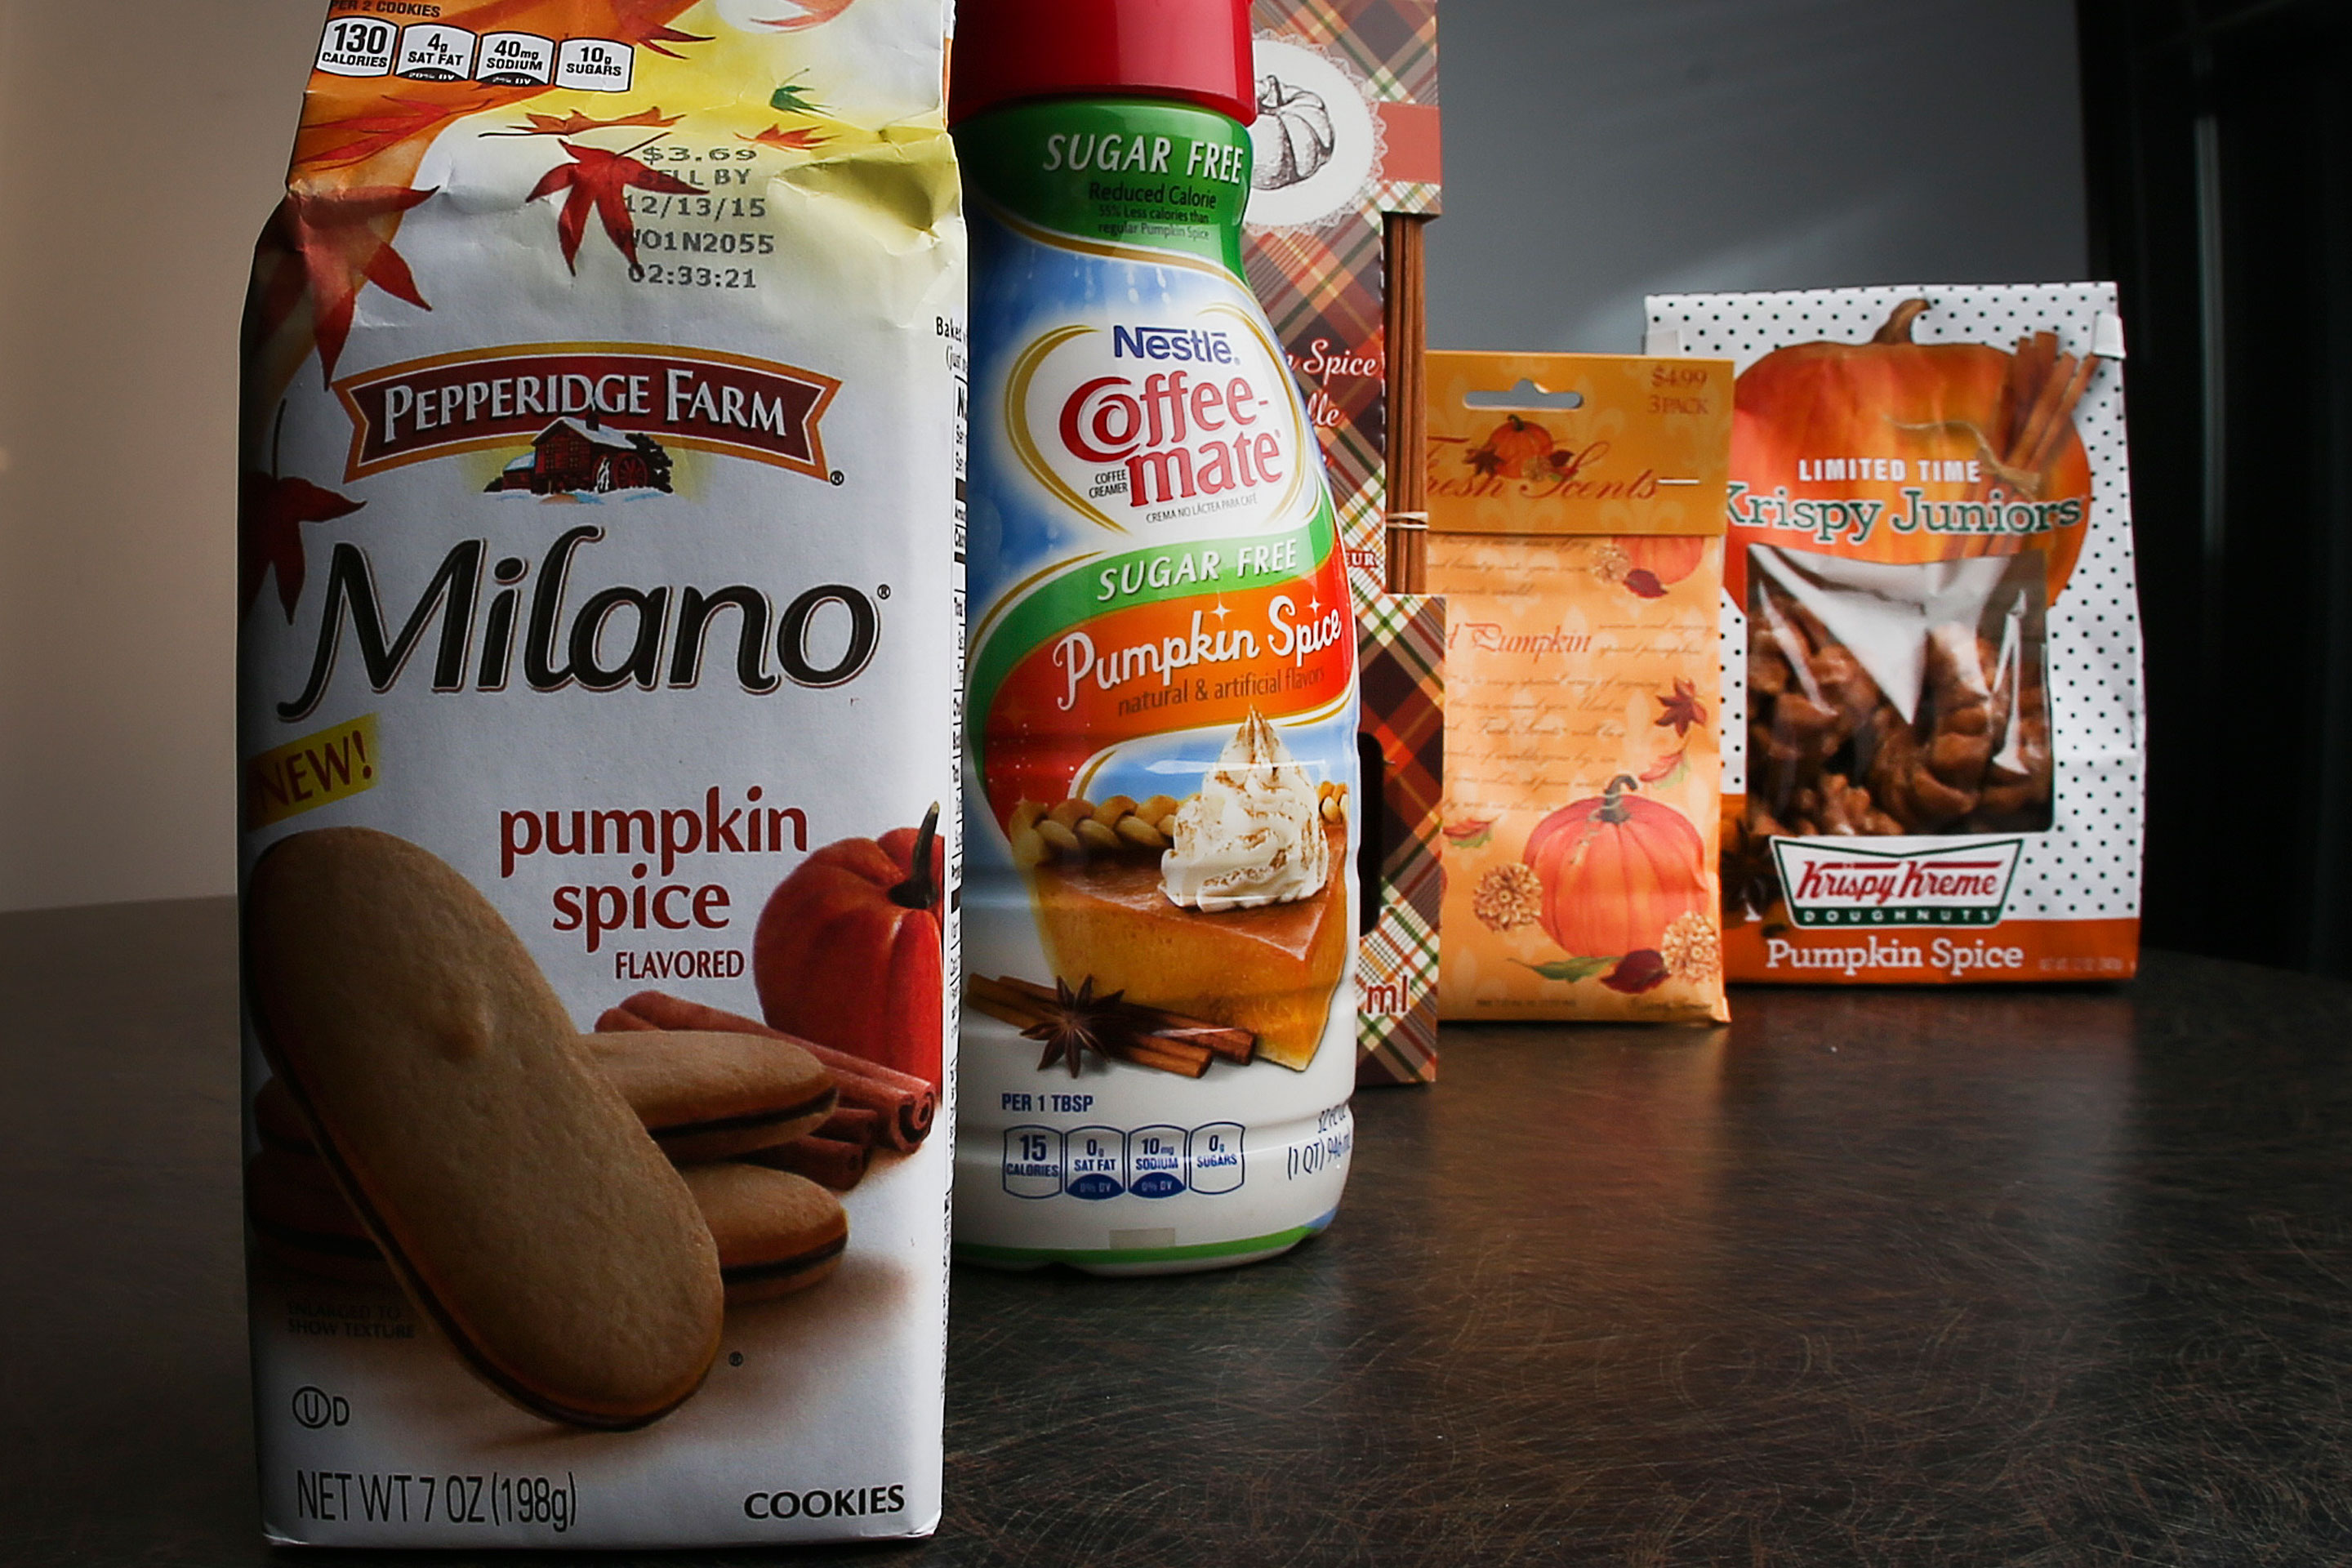 Pumpkin spice products ranging from cookies and donuts to candy and air freshener.